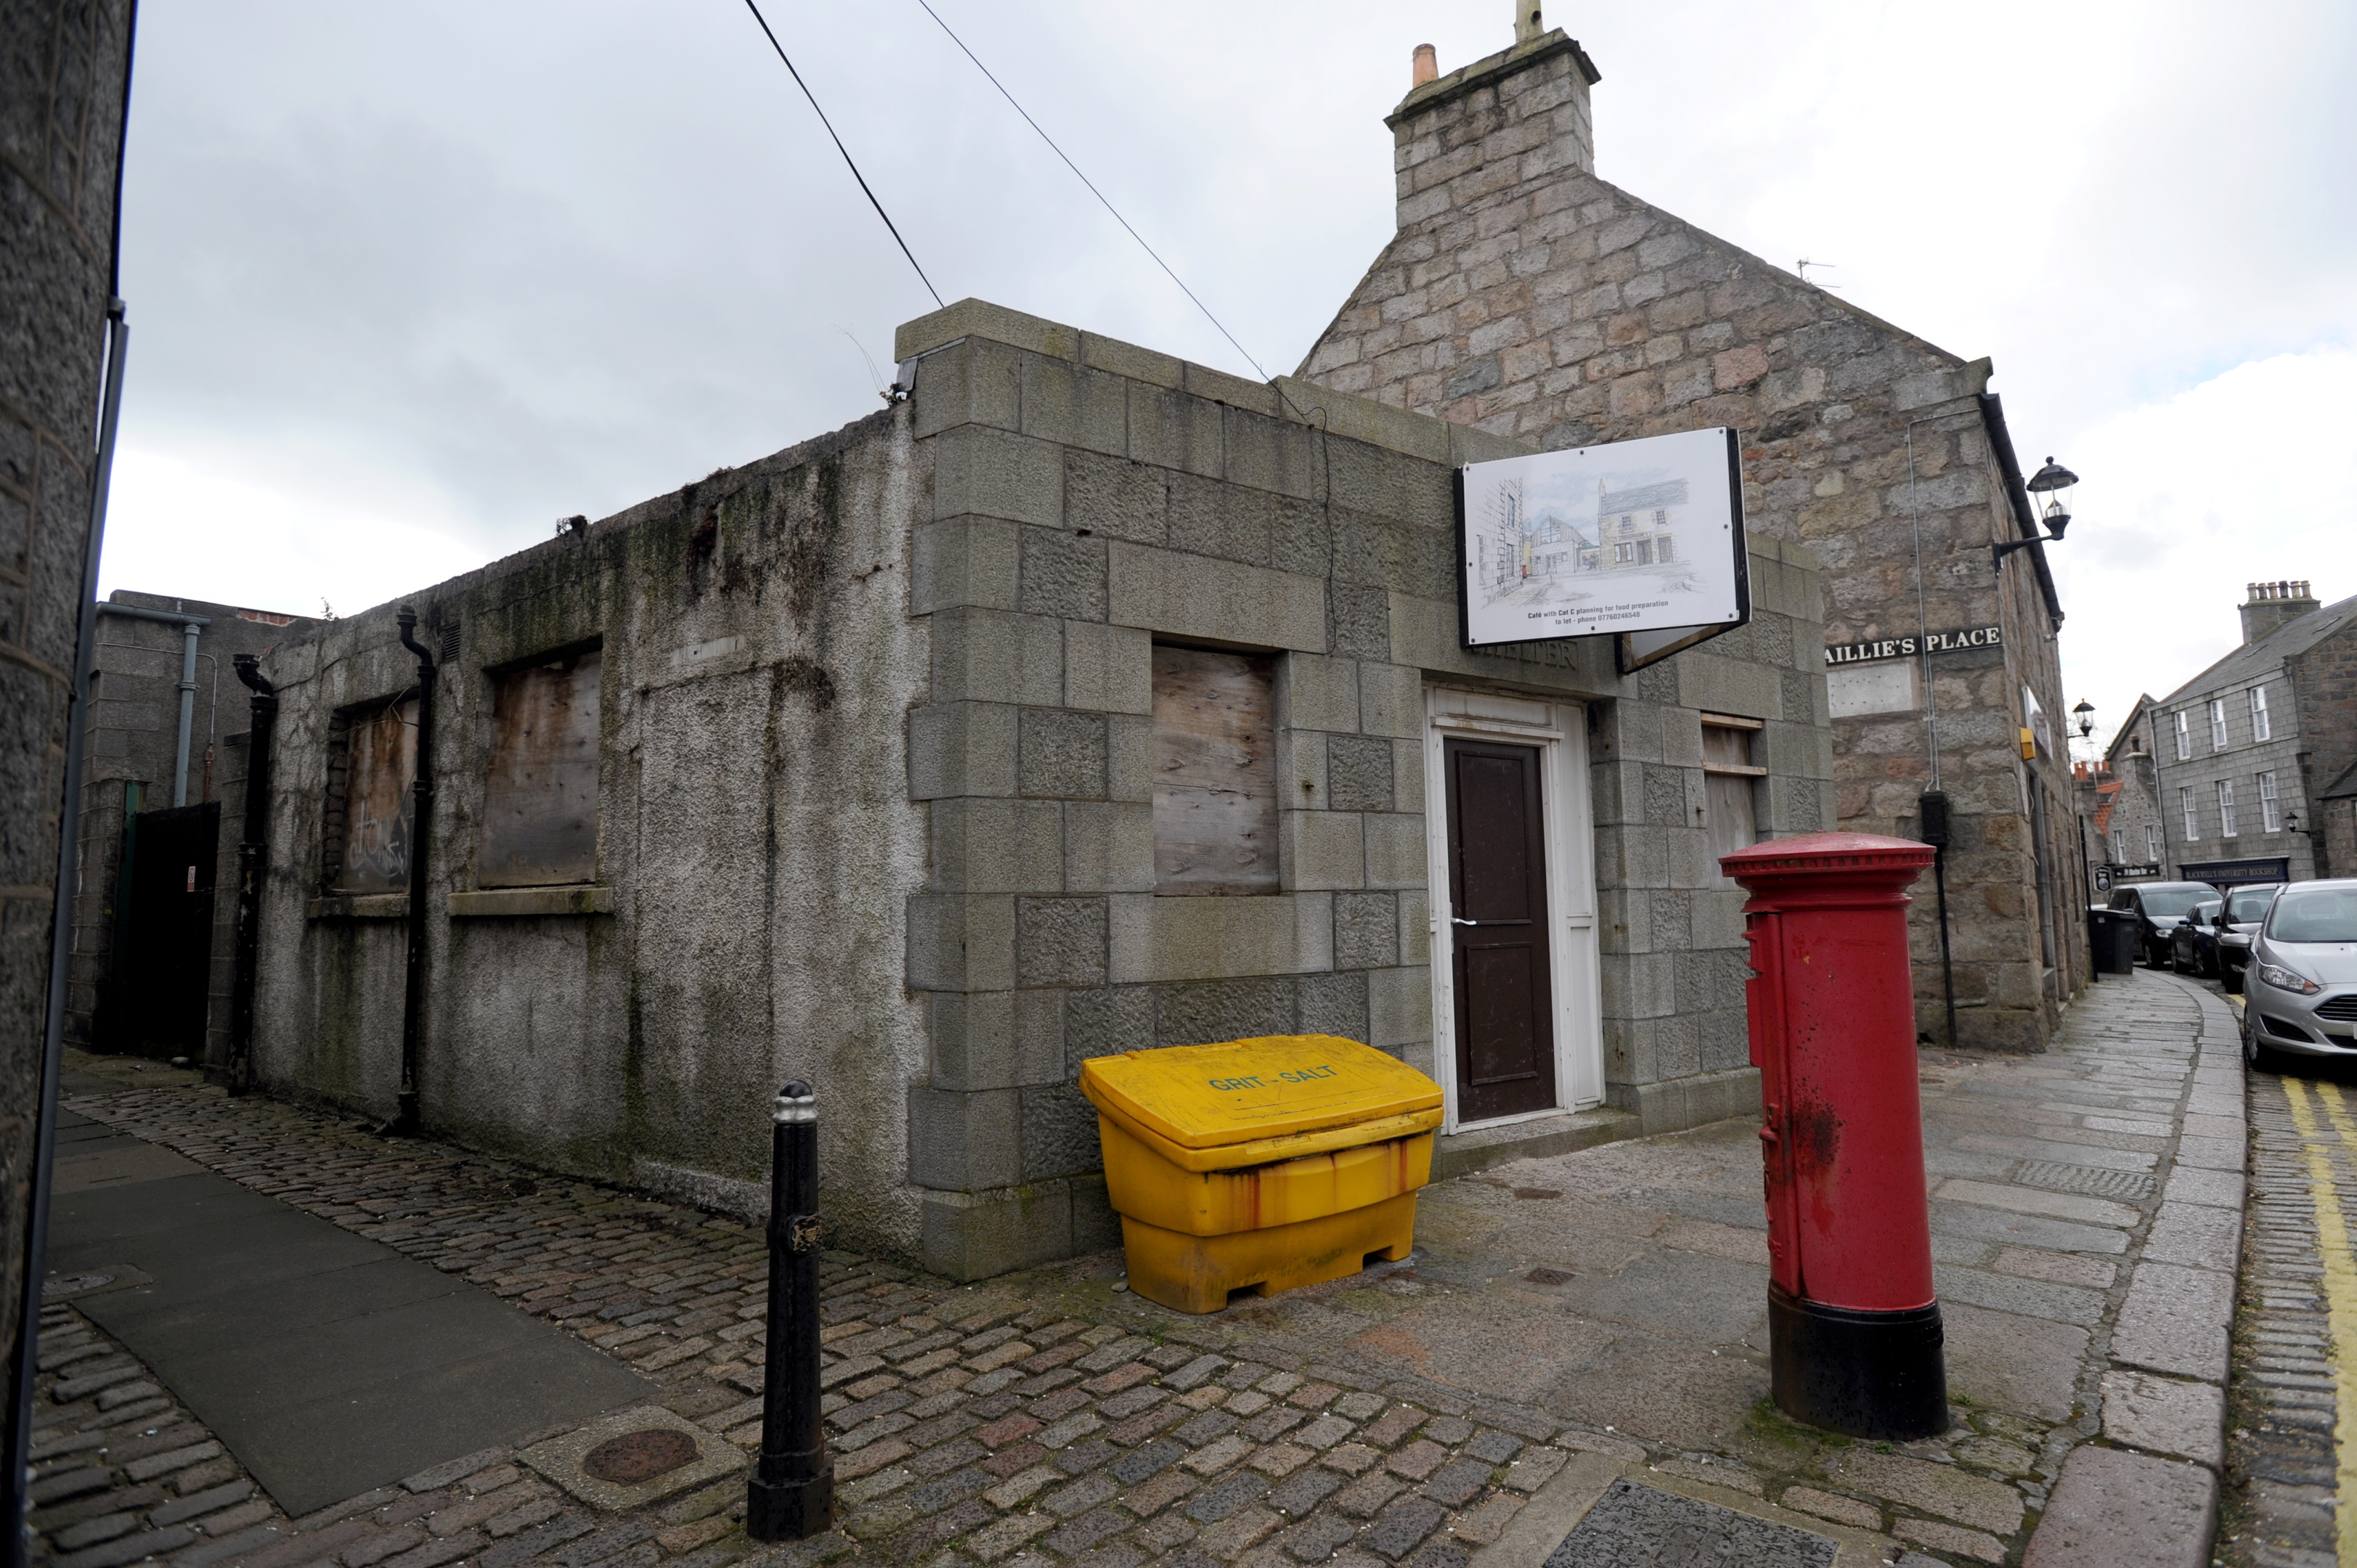 The old public toilet on High Street in Old Aberdeen.